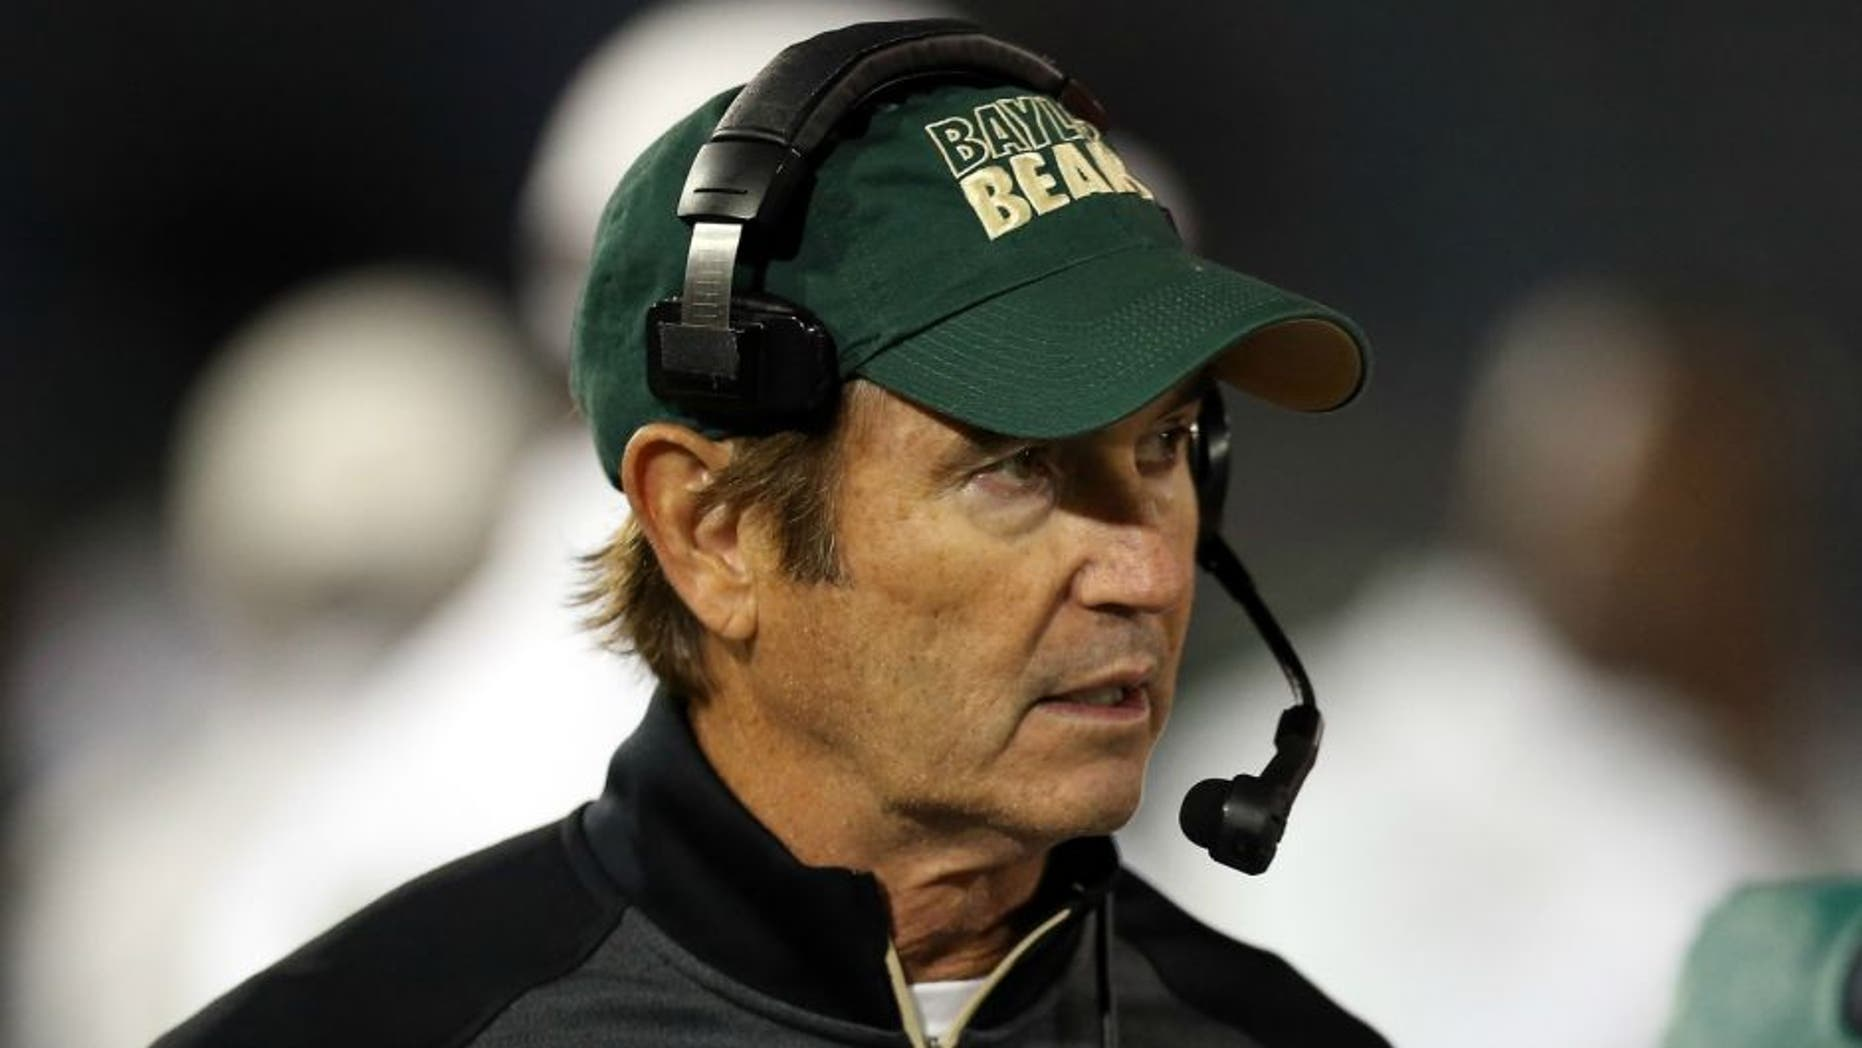 BUFFALO, NY - SEPTEMBER 12: Head Coach Art Briles of the Baylor Bears walks the sideline during the game against the Buffalo Bulls at UB Stadium on September 12, 2014 in Buffalo, New York. (Photo by Vaughn Ridley/Getty Images)